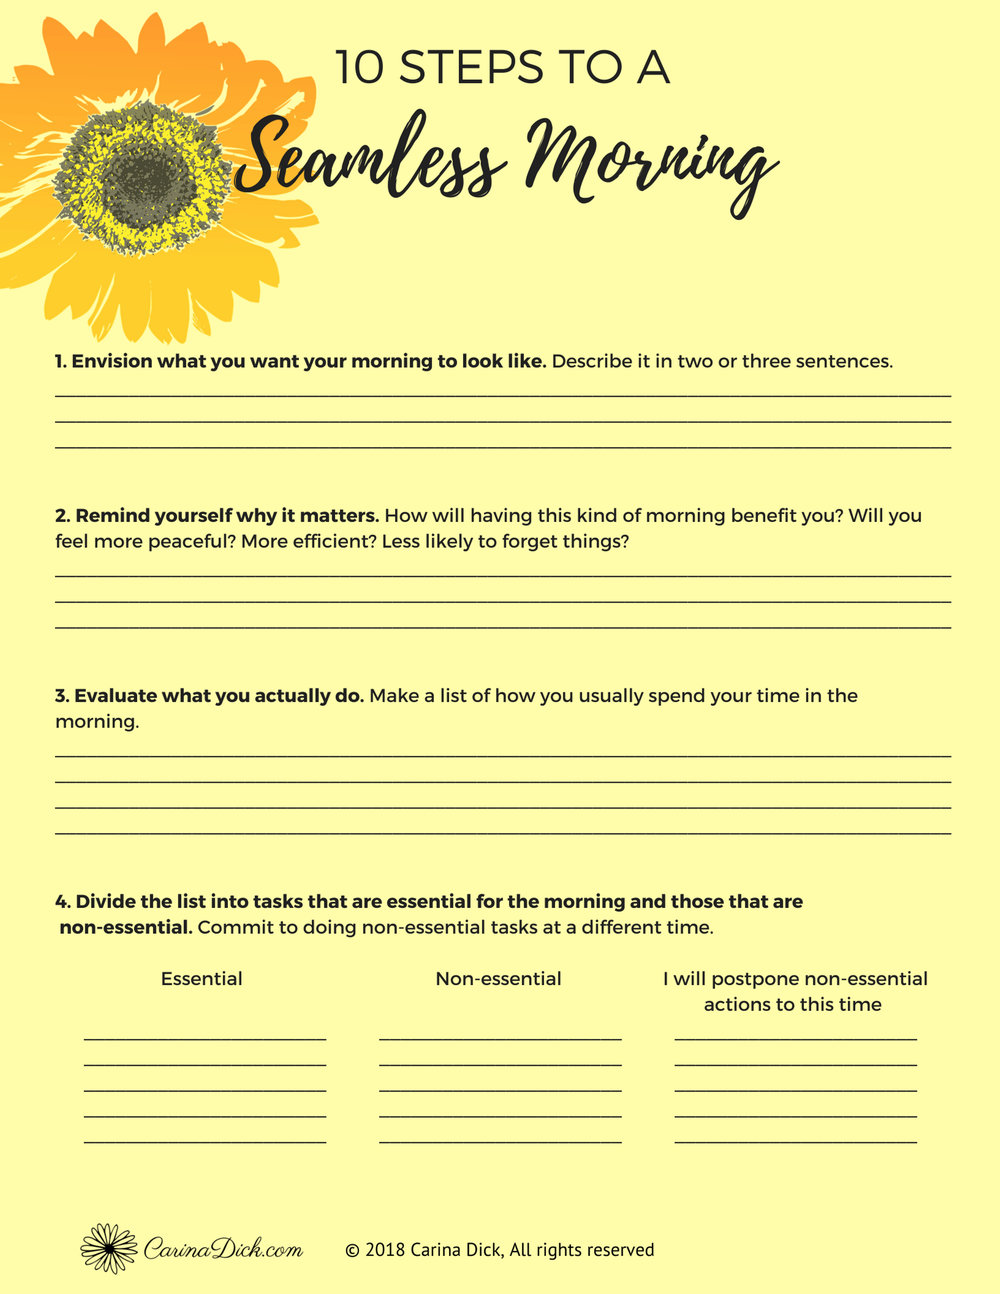 10 steps to a seamless morning.jpg